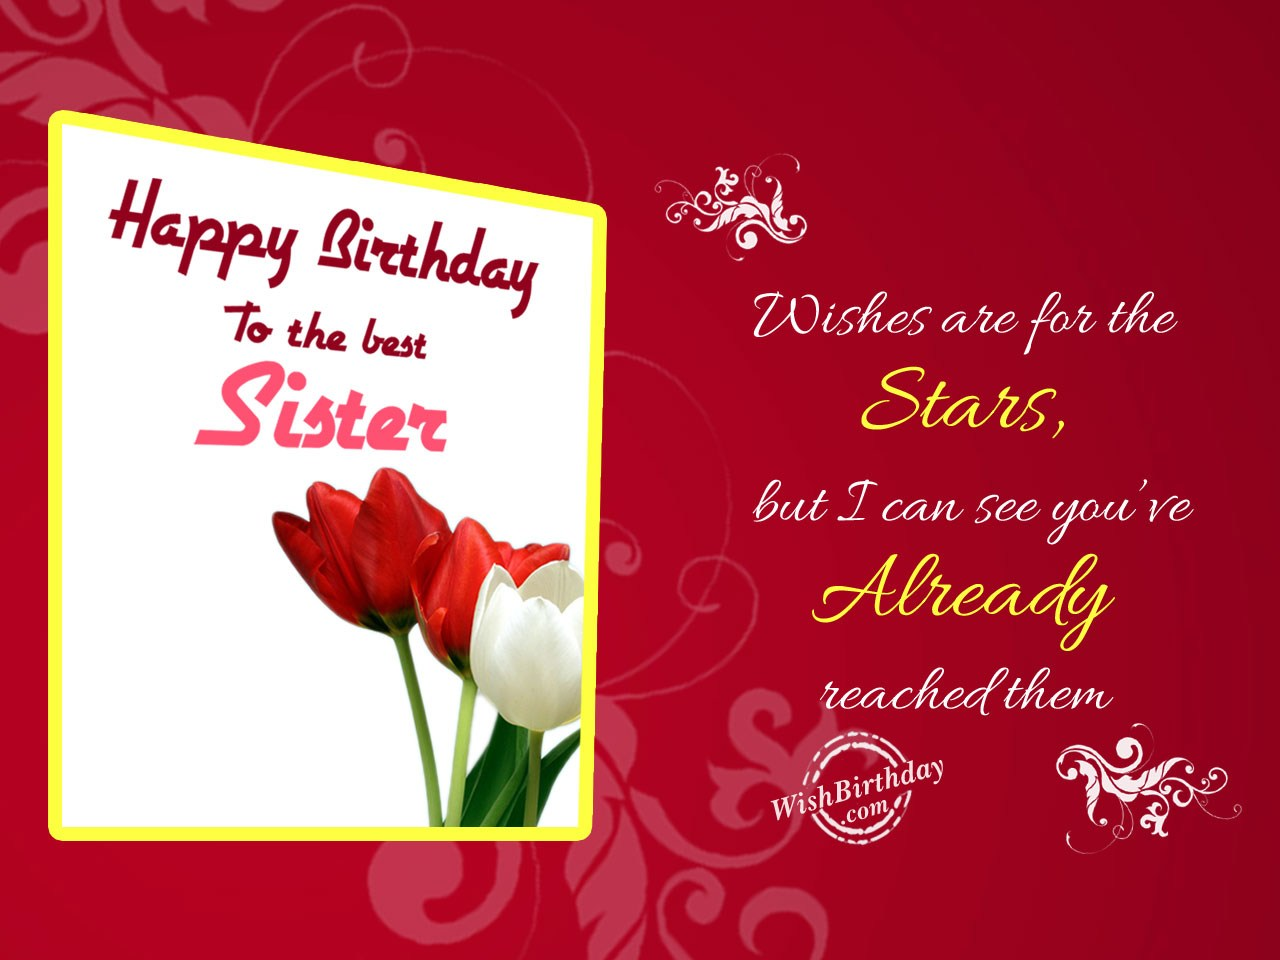 birthday wishes for sister greeting cards ; Wishes-are-for-the-stars